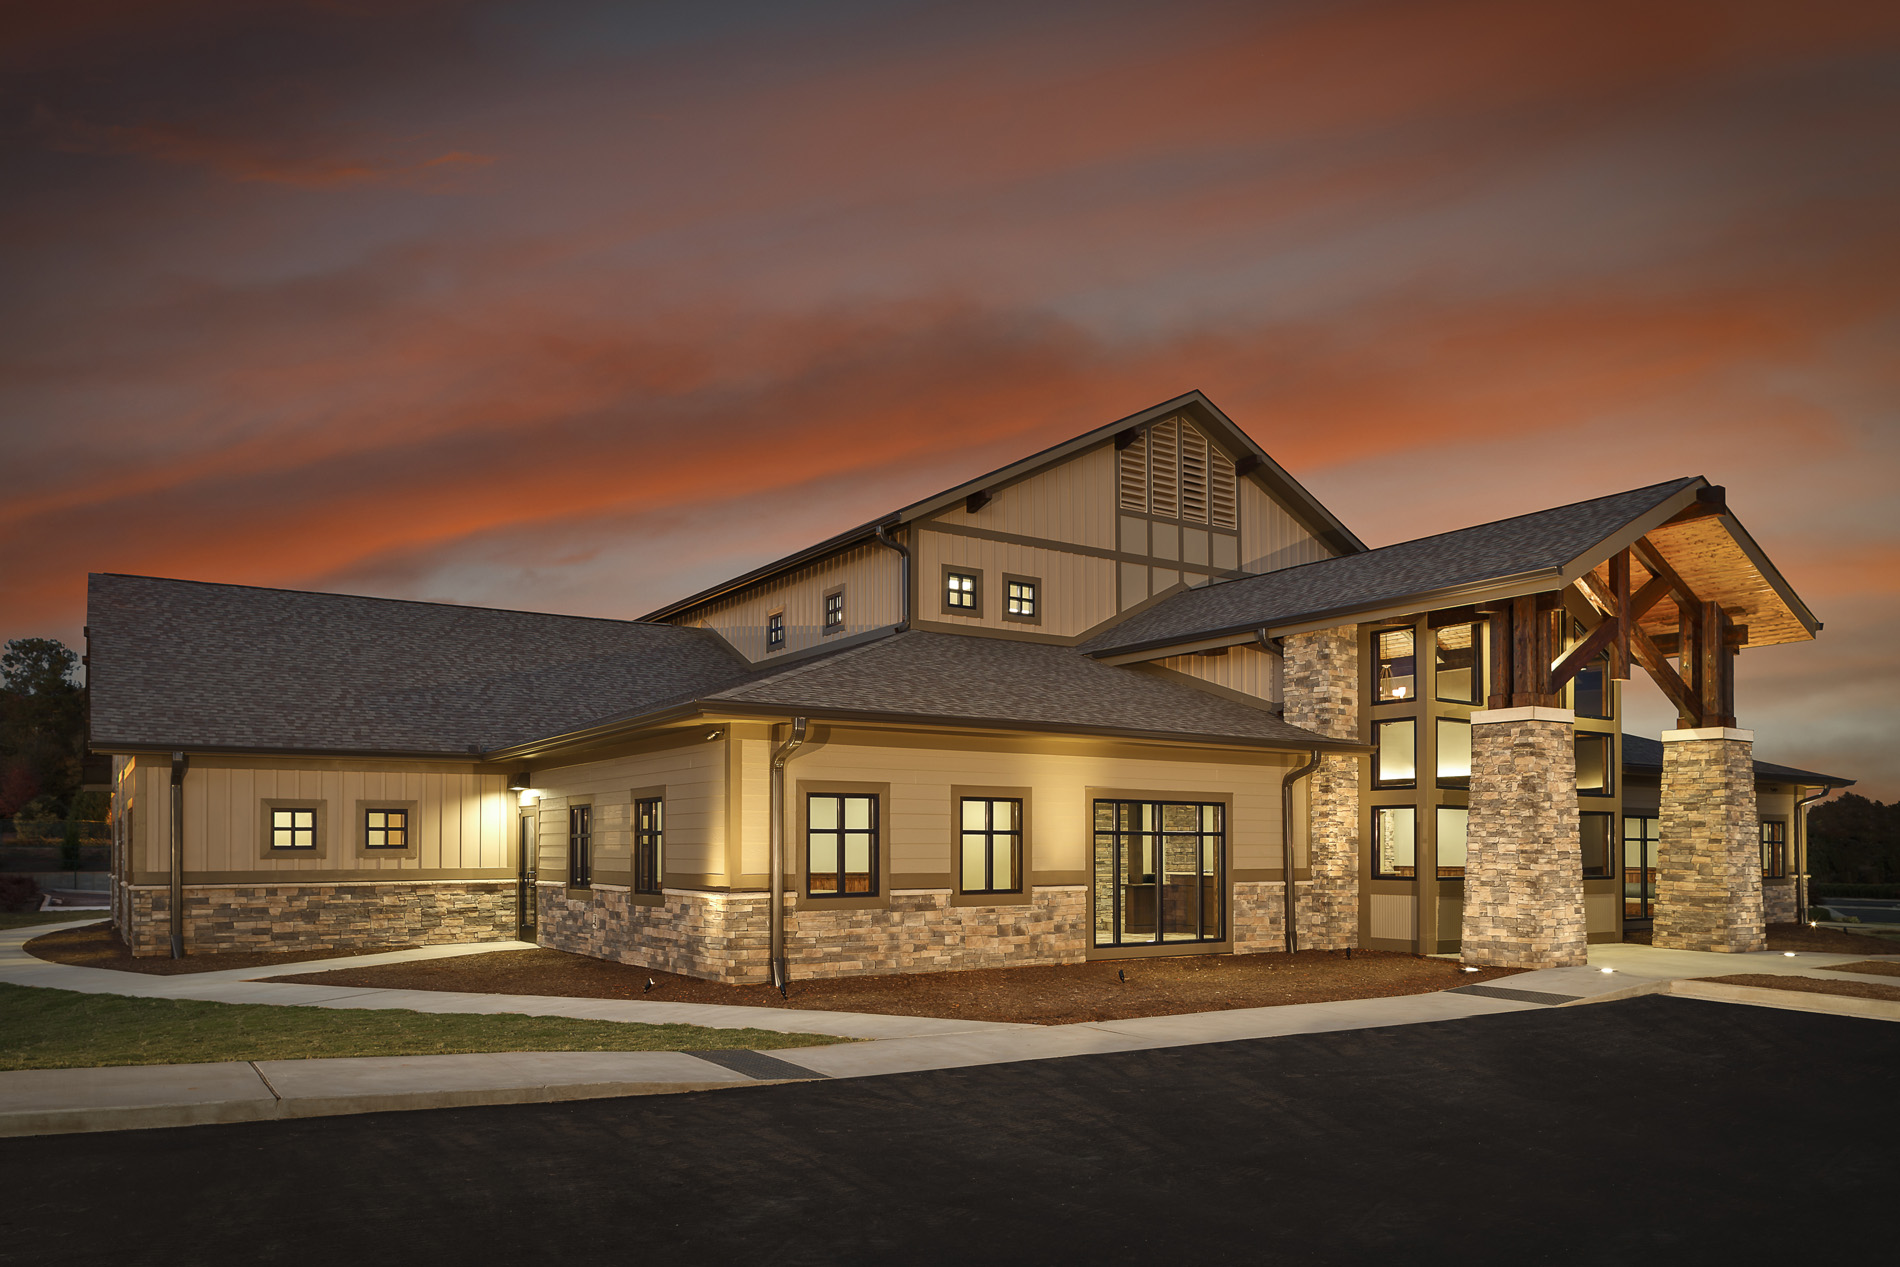 Pelham links family and cosmetic dentistry dp3 architects for Architects greenville sc